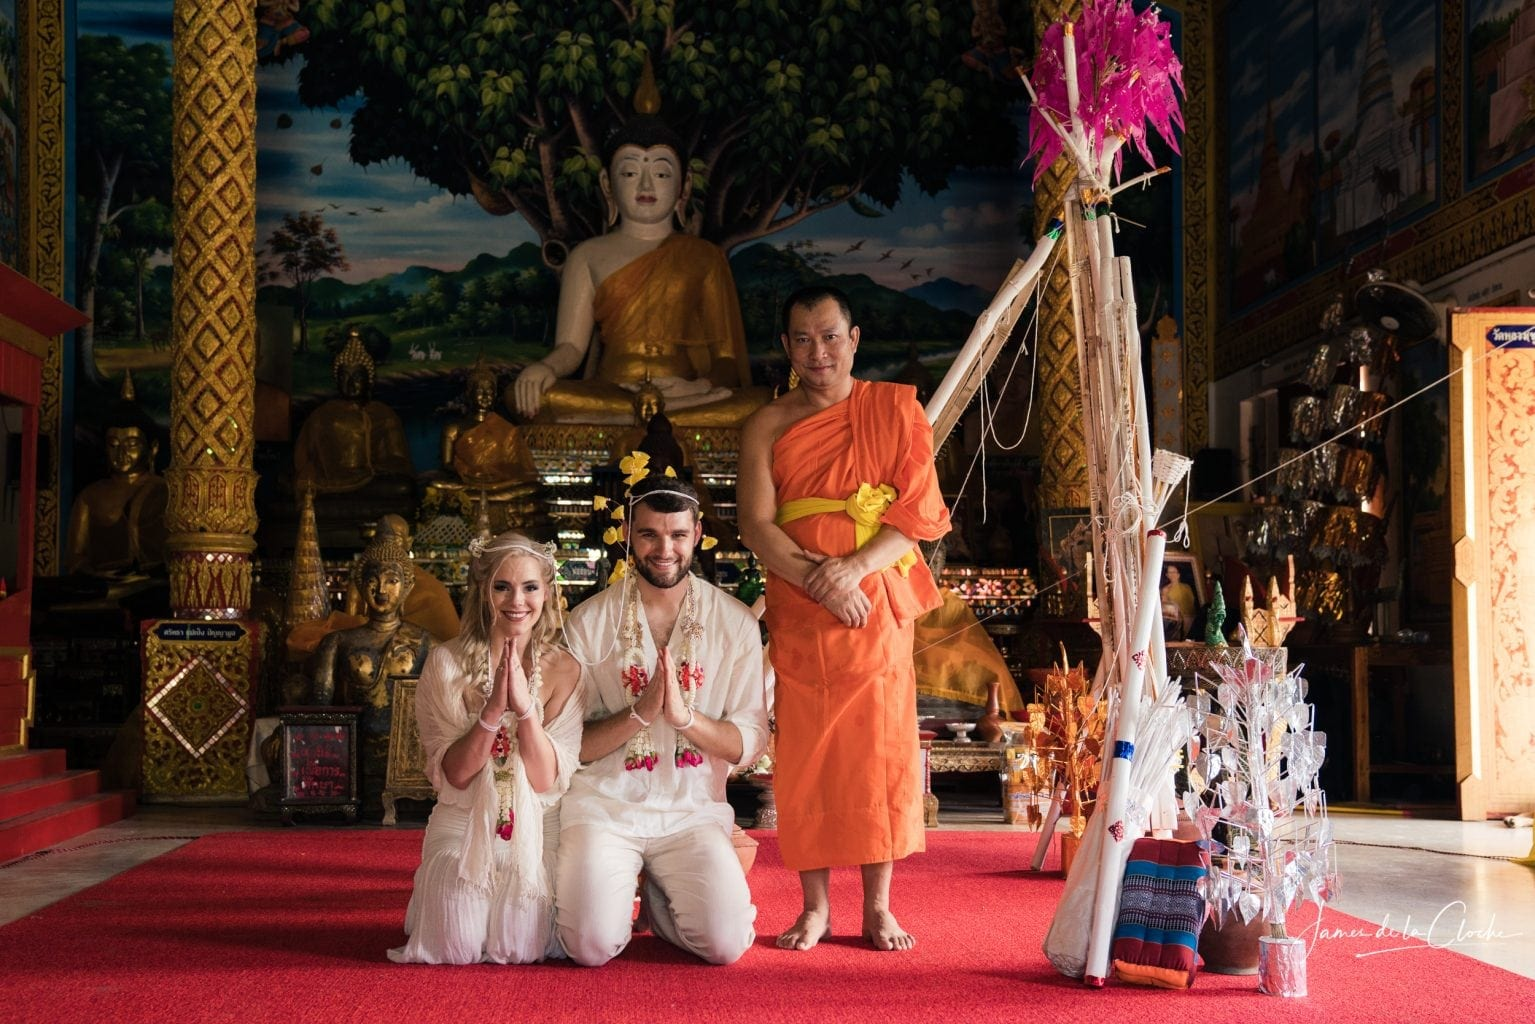 The monk and the couple pose in front of the Buddha